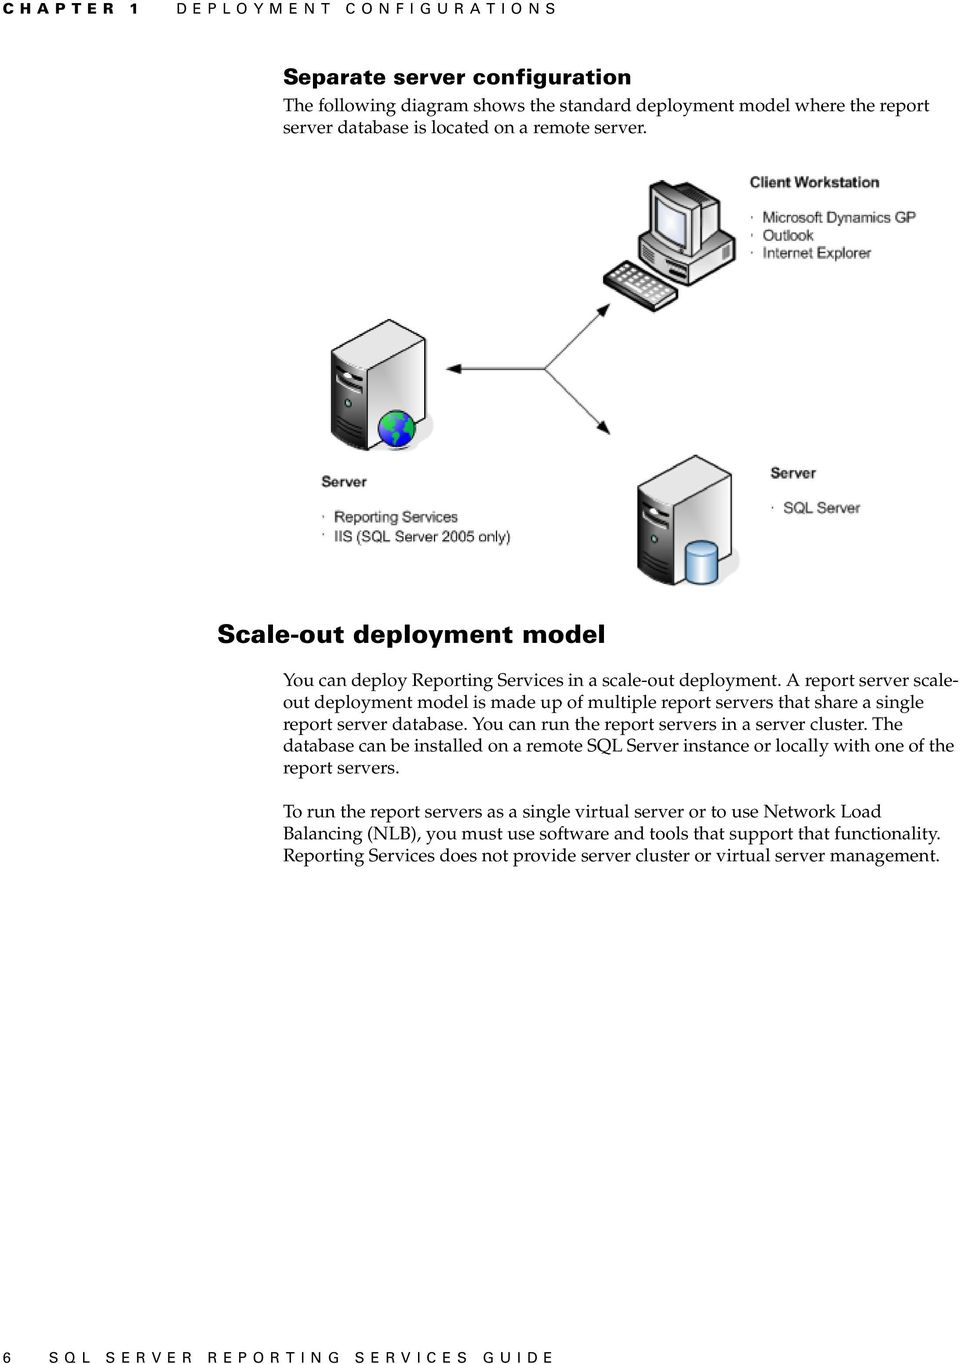 A report server scaleout deployment model is made up of multiple report servers that share a single report server database. You can run the report servers in a server cluster.